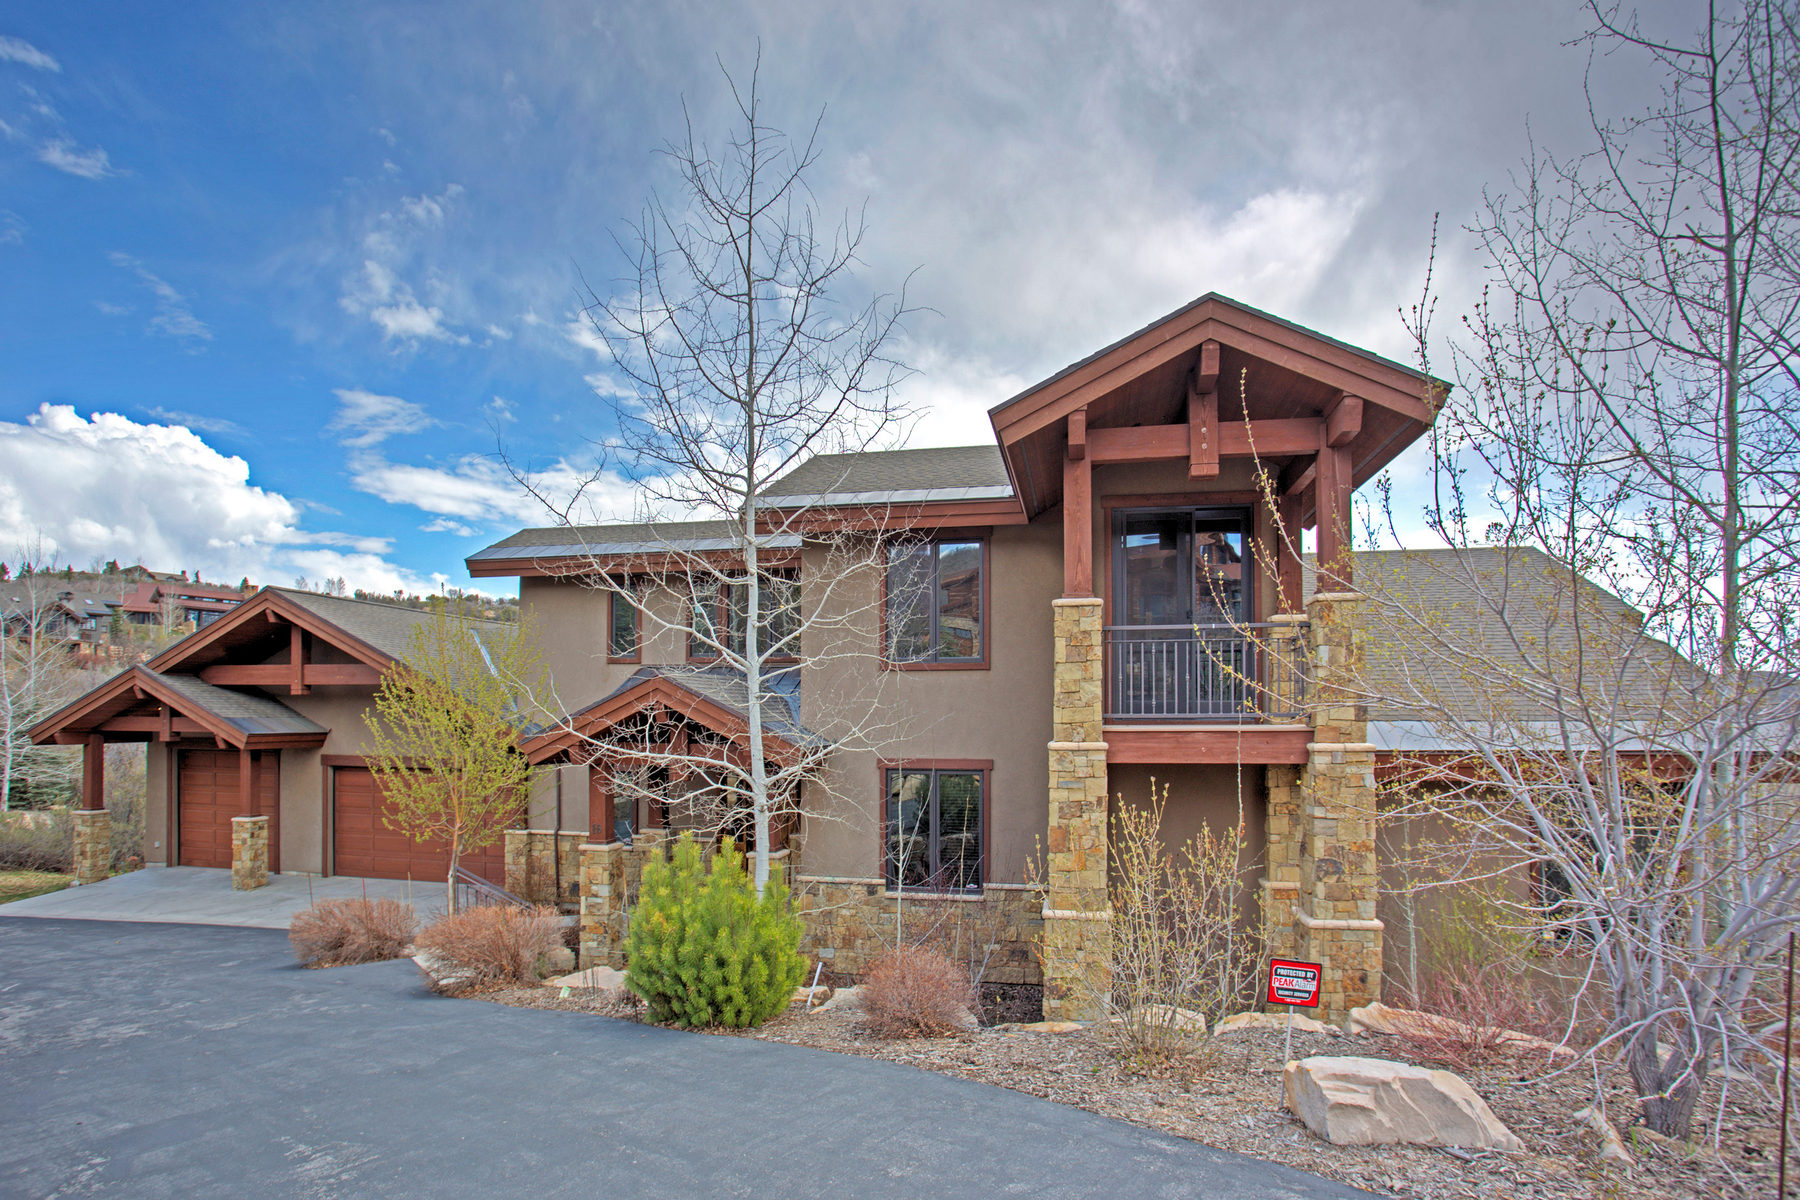 Single Family Home for Sale at Exceptional Custom Built Home in Eagle Pointe 16 Eagle Landing Ct Park City, Utah 84060 United States